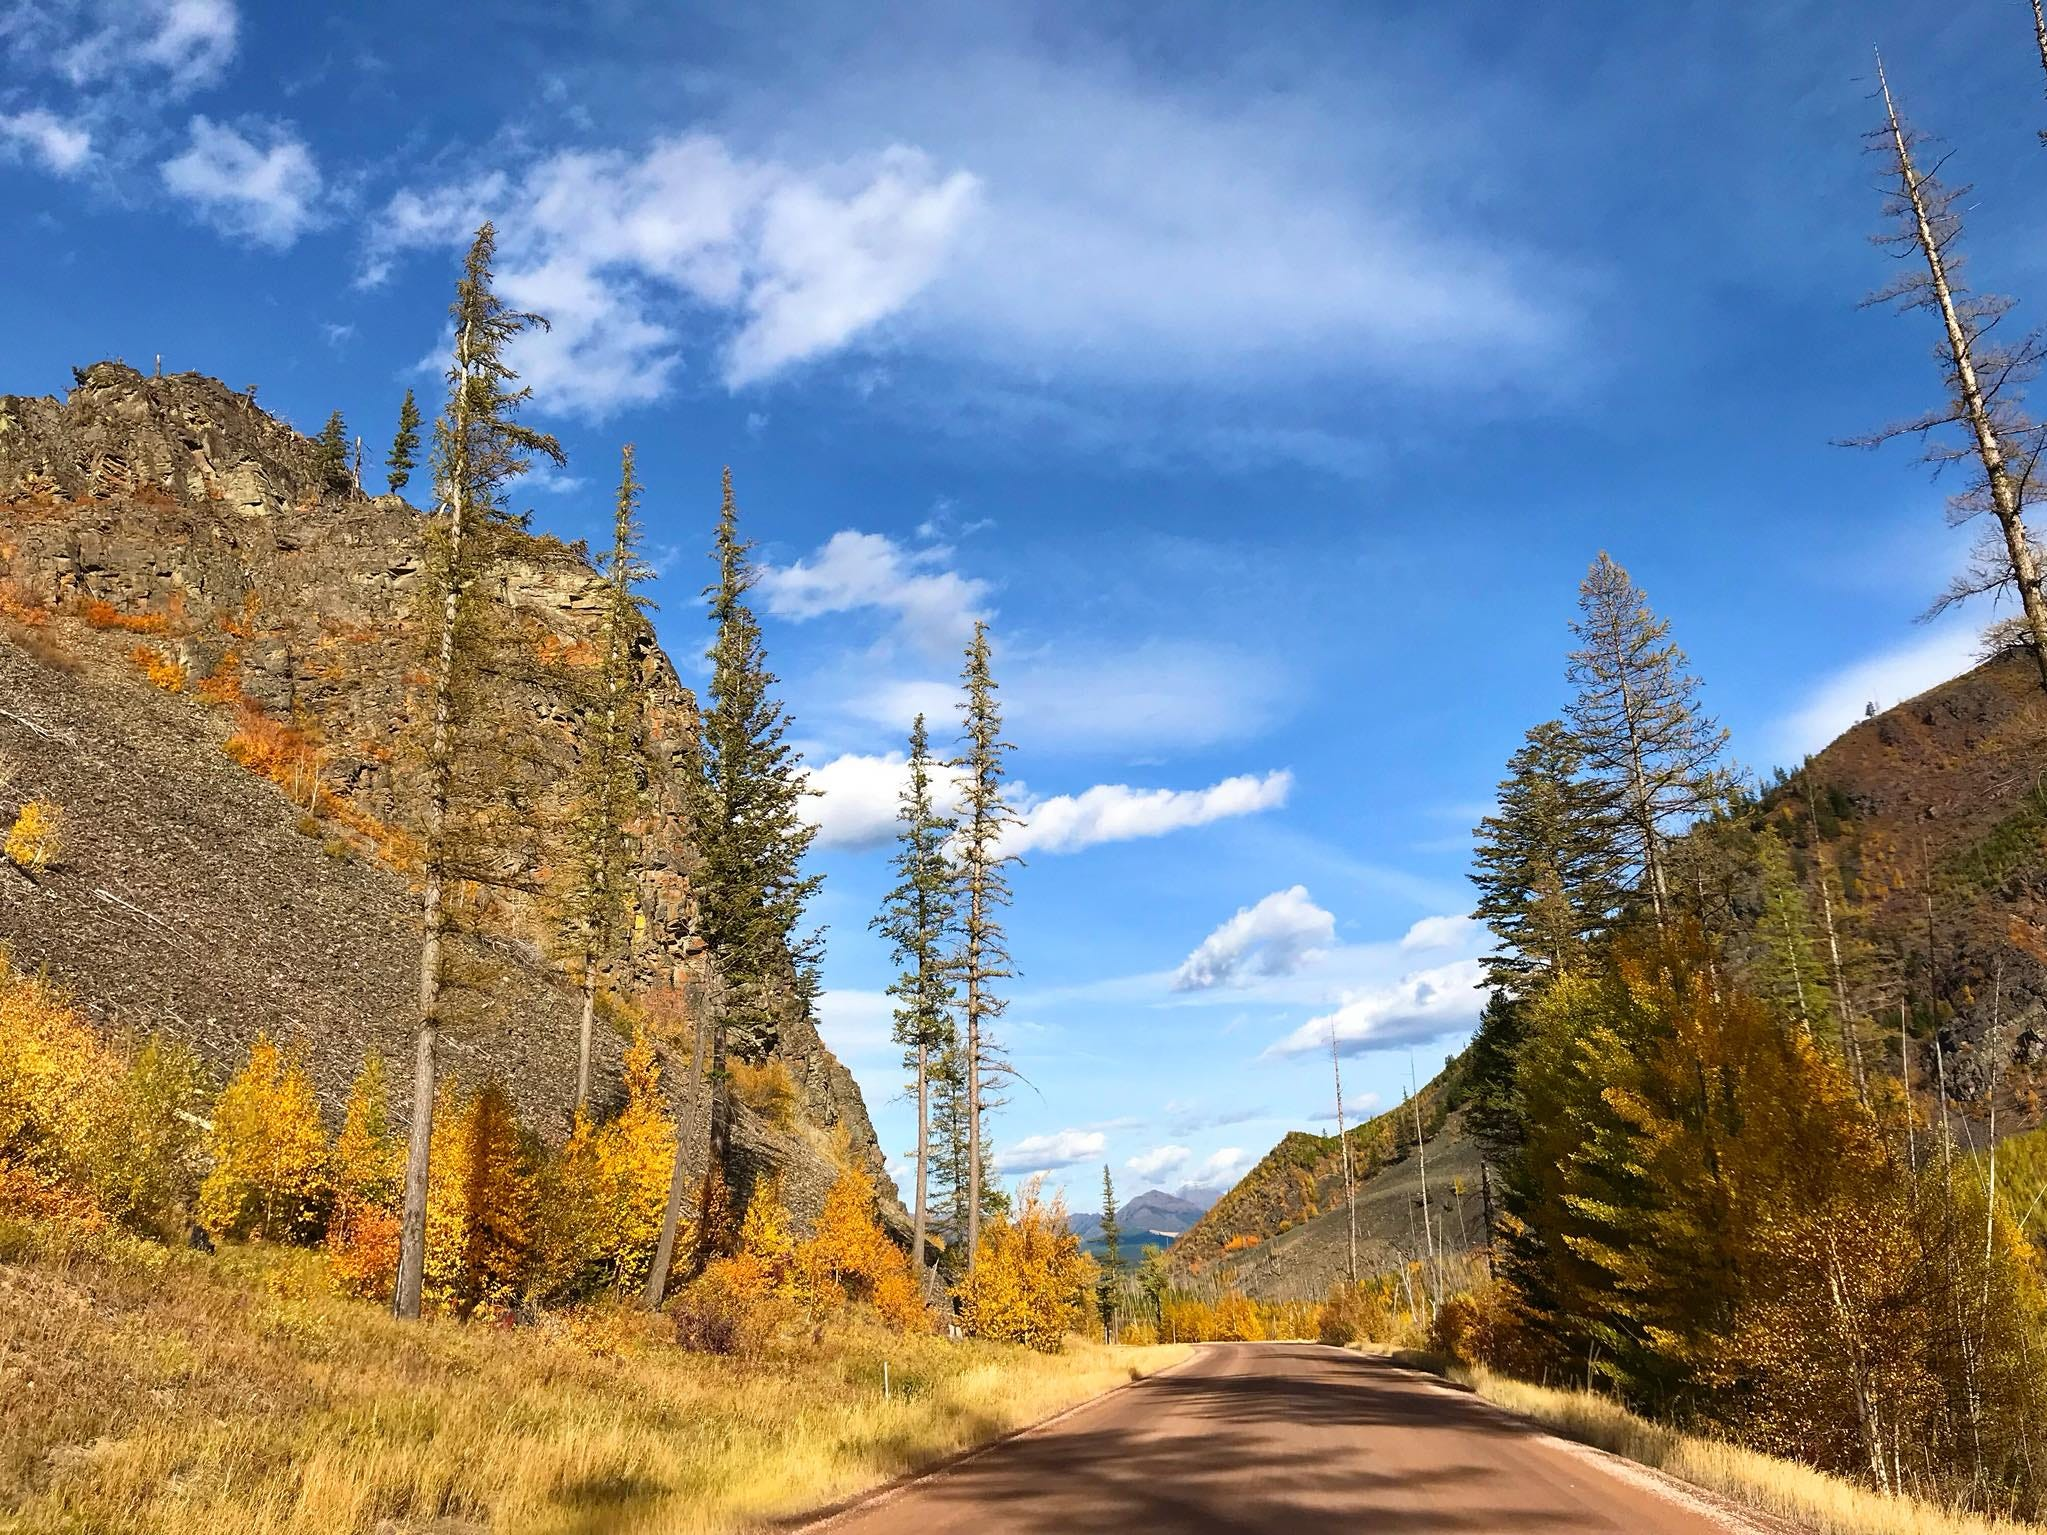 Fall colors along the road to Glacier National Park's remote northwest corner